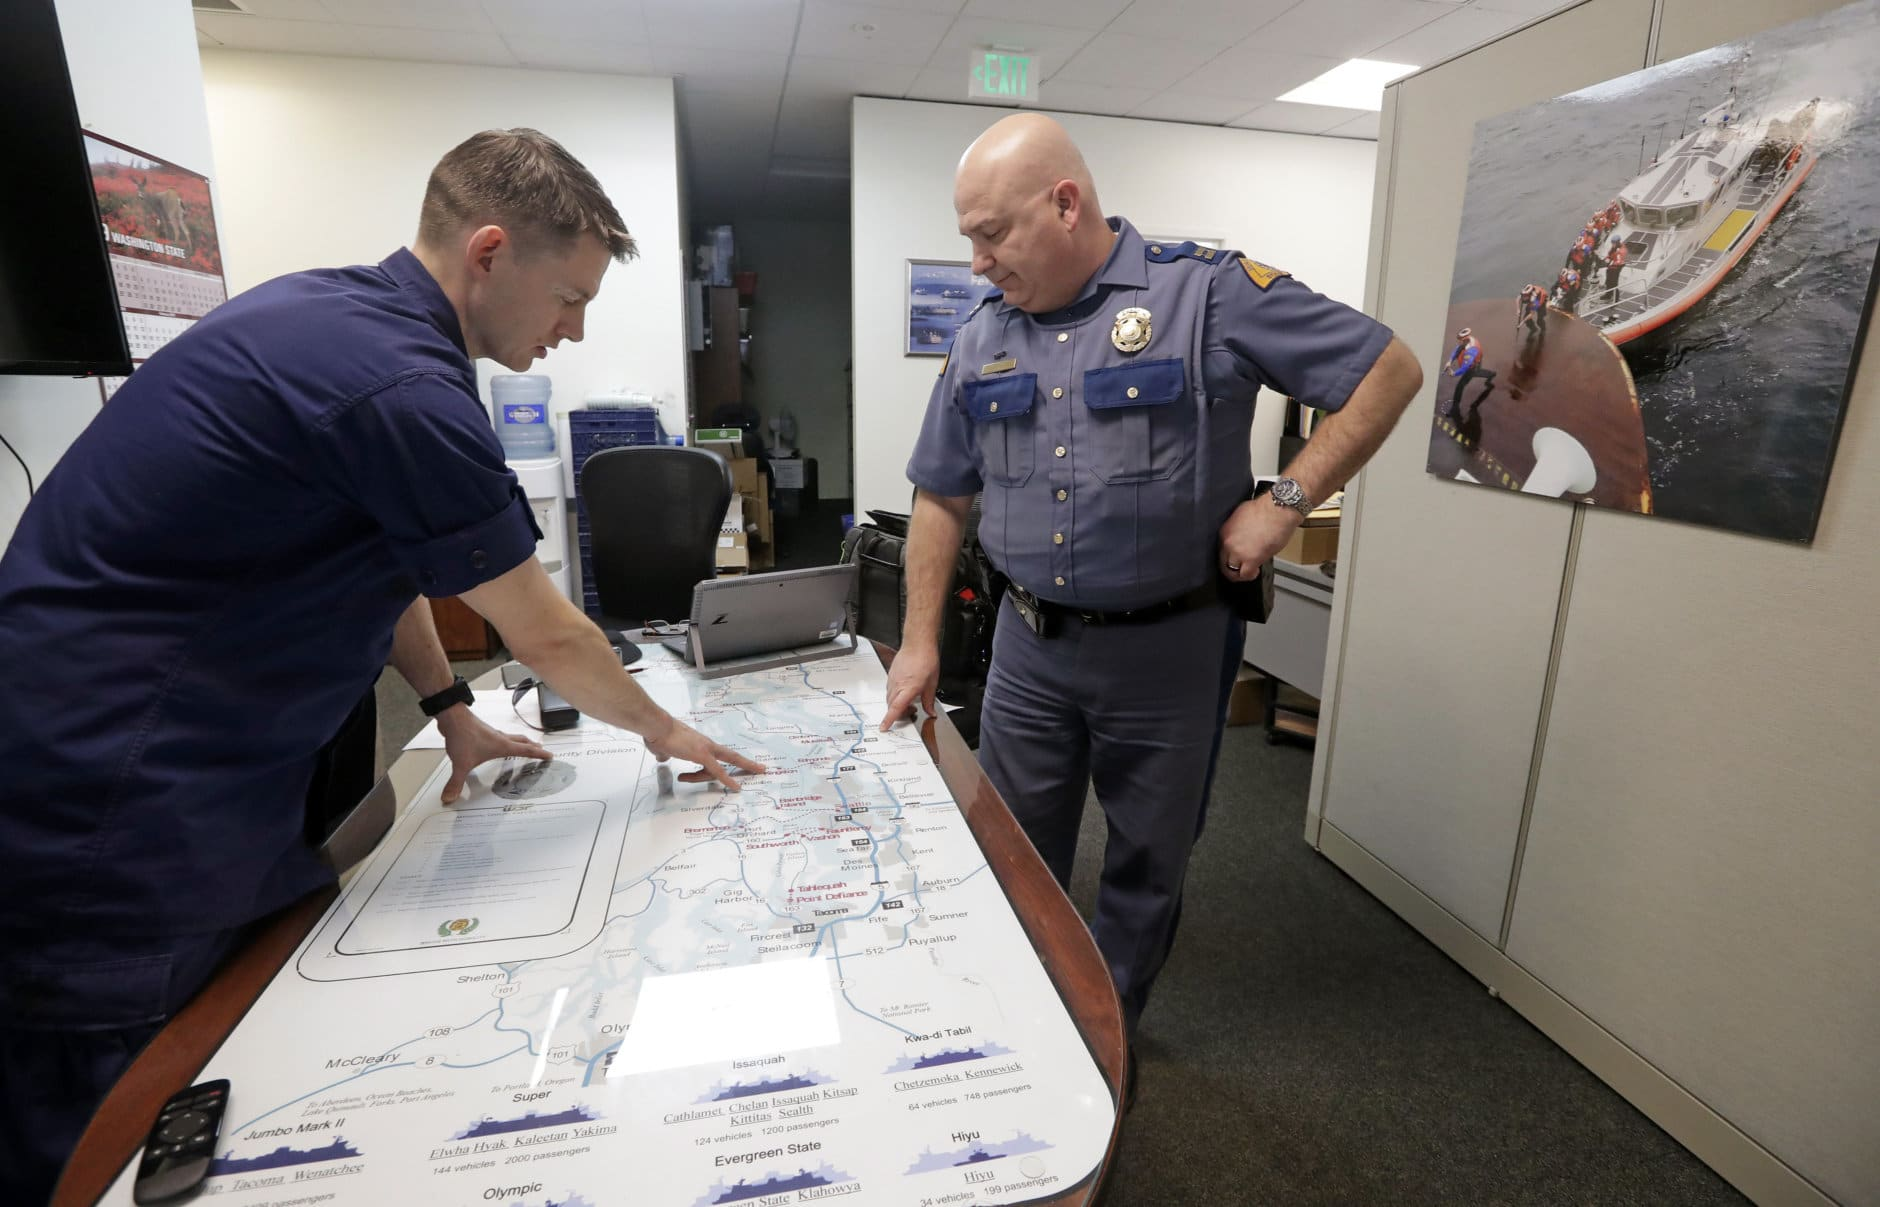 U.S. Coast Guard Lt. Cmdr. Blair Sweigert, left, who missed a paycheck a day earlier during the partial government shutdown, works with Washington State Patrol Capt. Dan Atchison in a shared office where they coordinate marine security at Sector Puget Sound base Wednesday, Jan. 16, 2019, in Seattle. The Coast Guard is part of the U.S. Department of Homeland Security, which is unfunded during the shutdown, now in its fourth week. (AP Photo/Elaine Thompson)